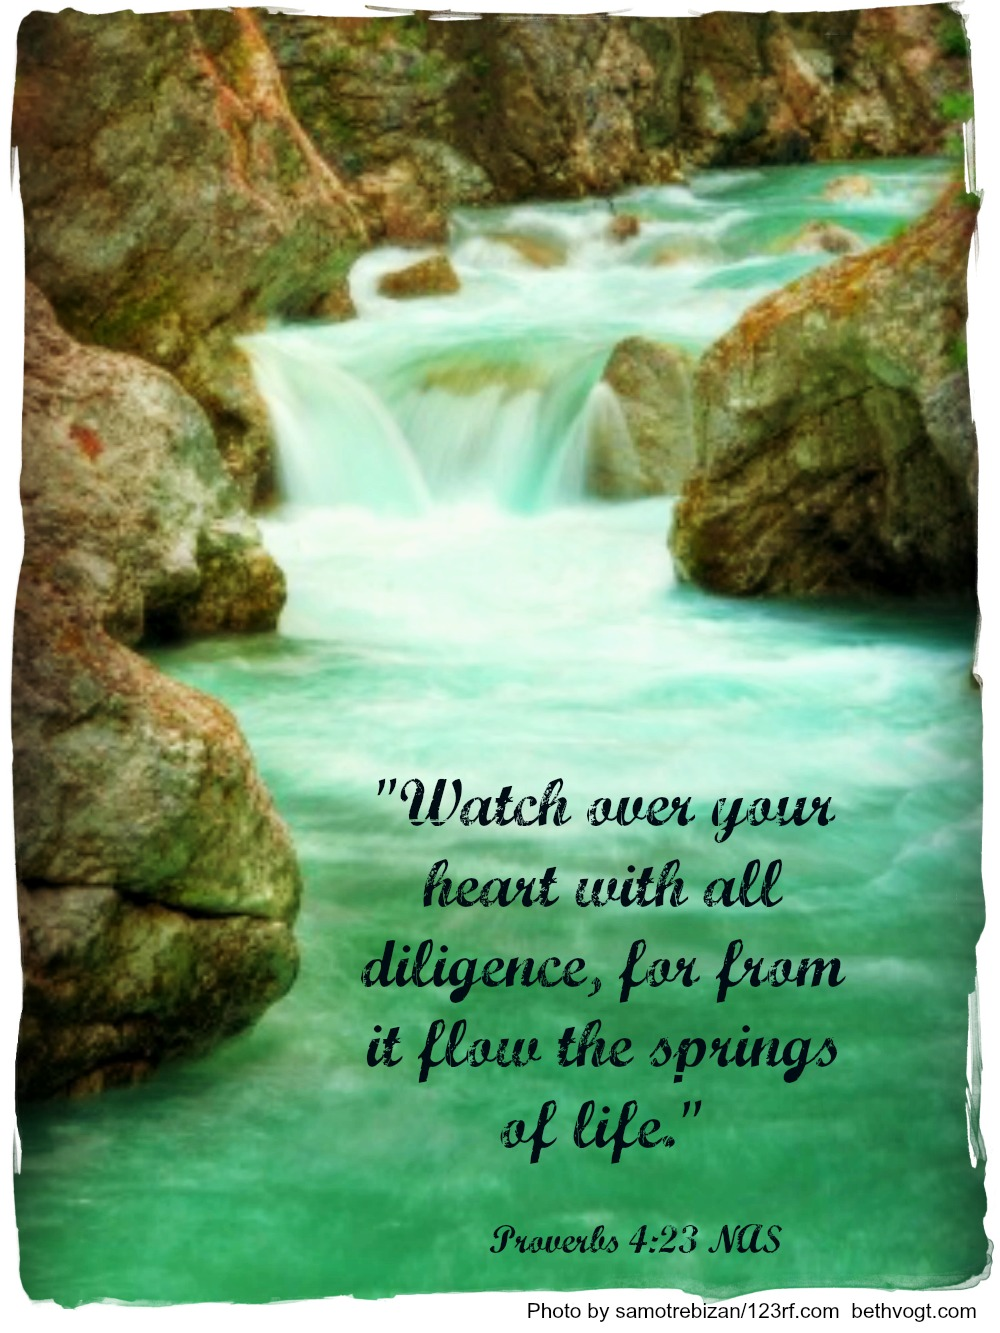 peace like a river quotes quotesgram